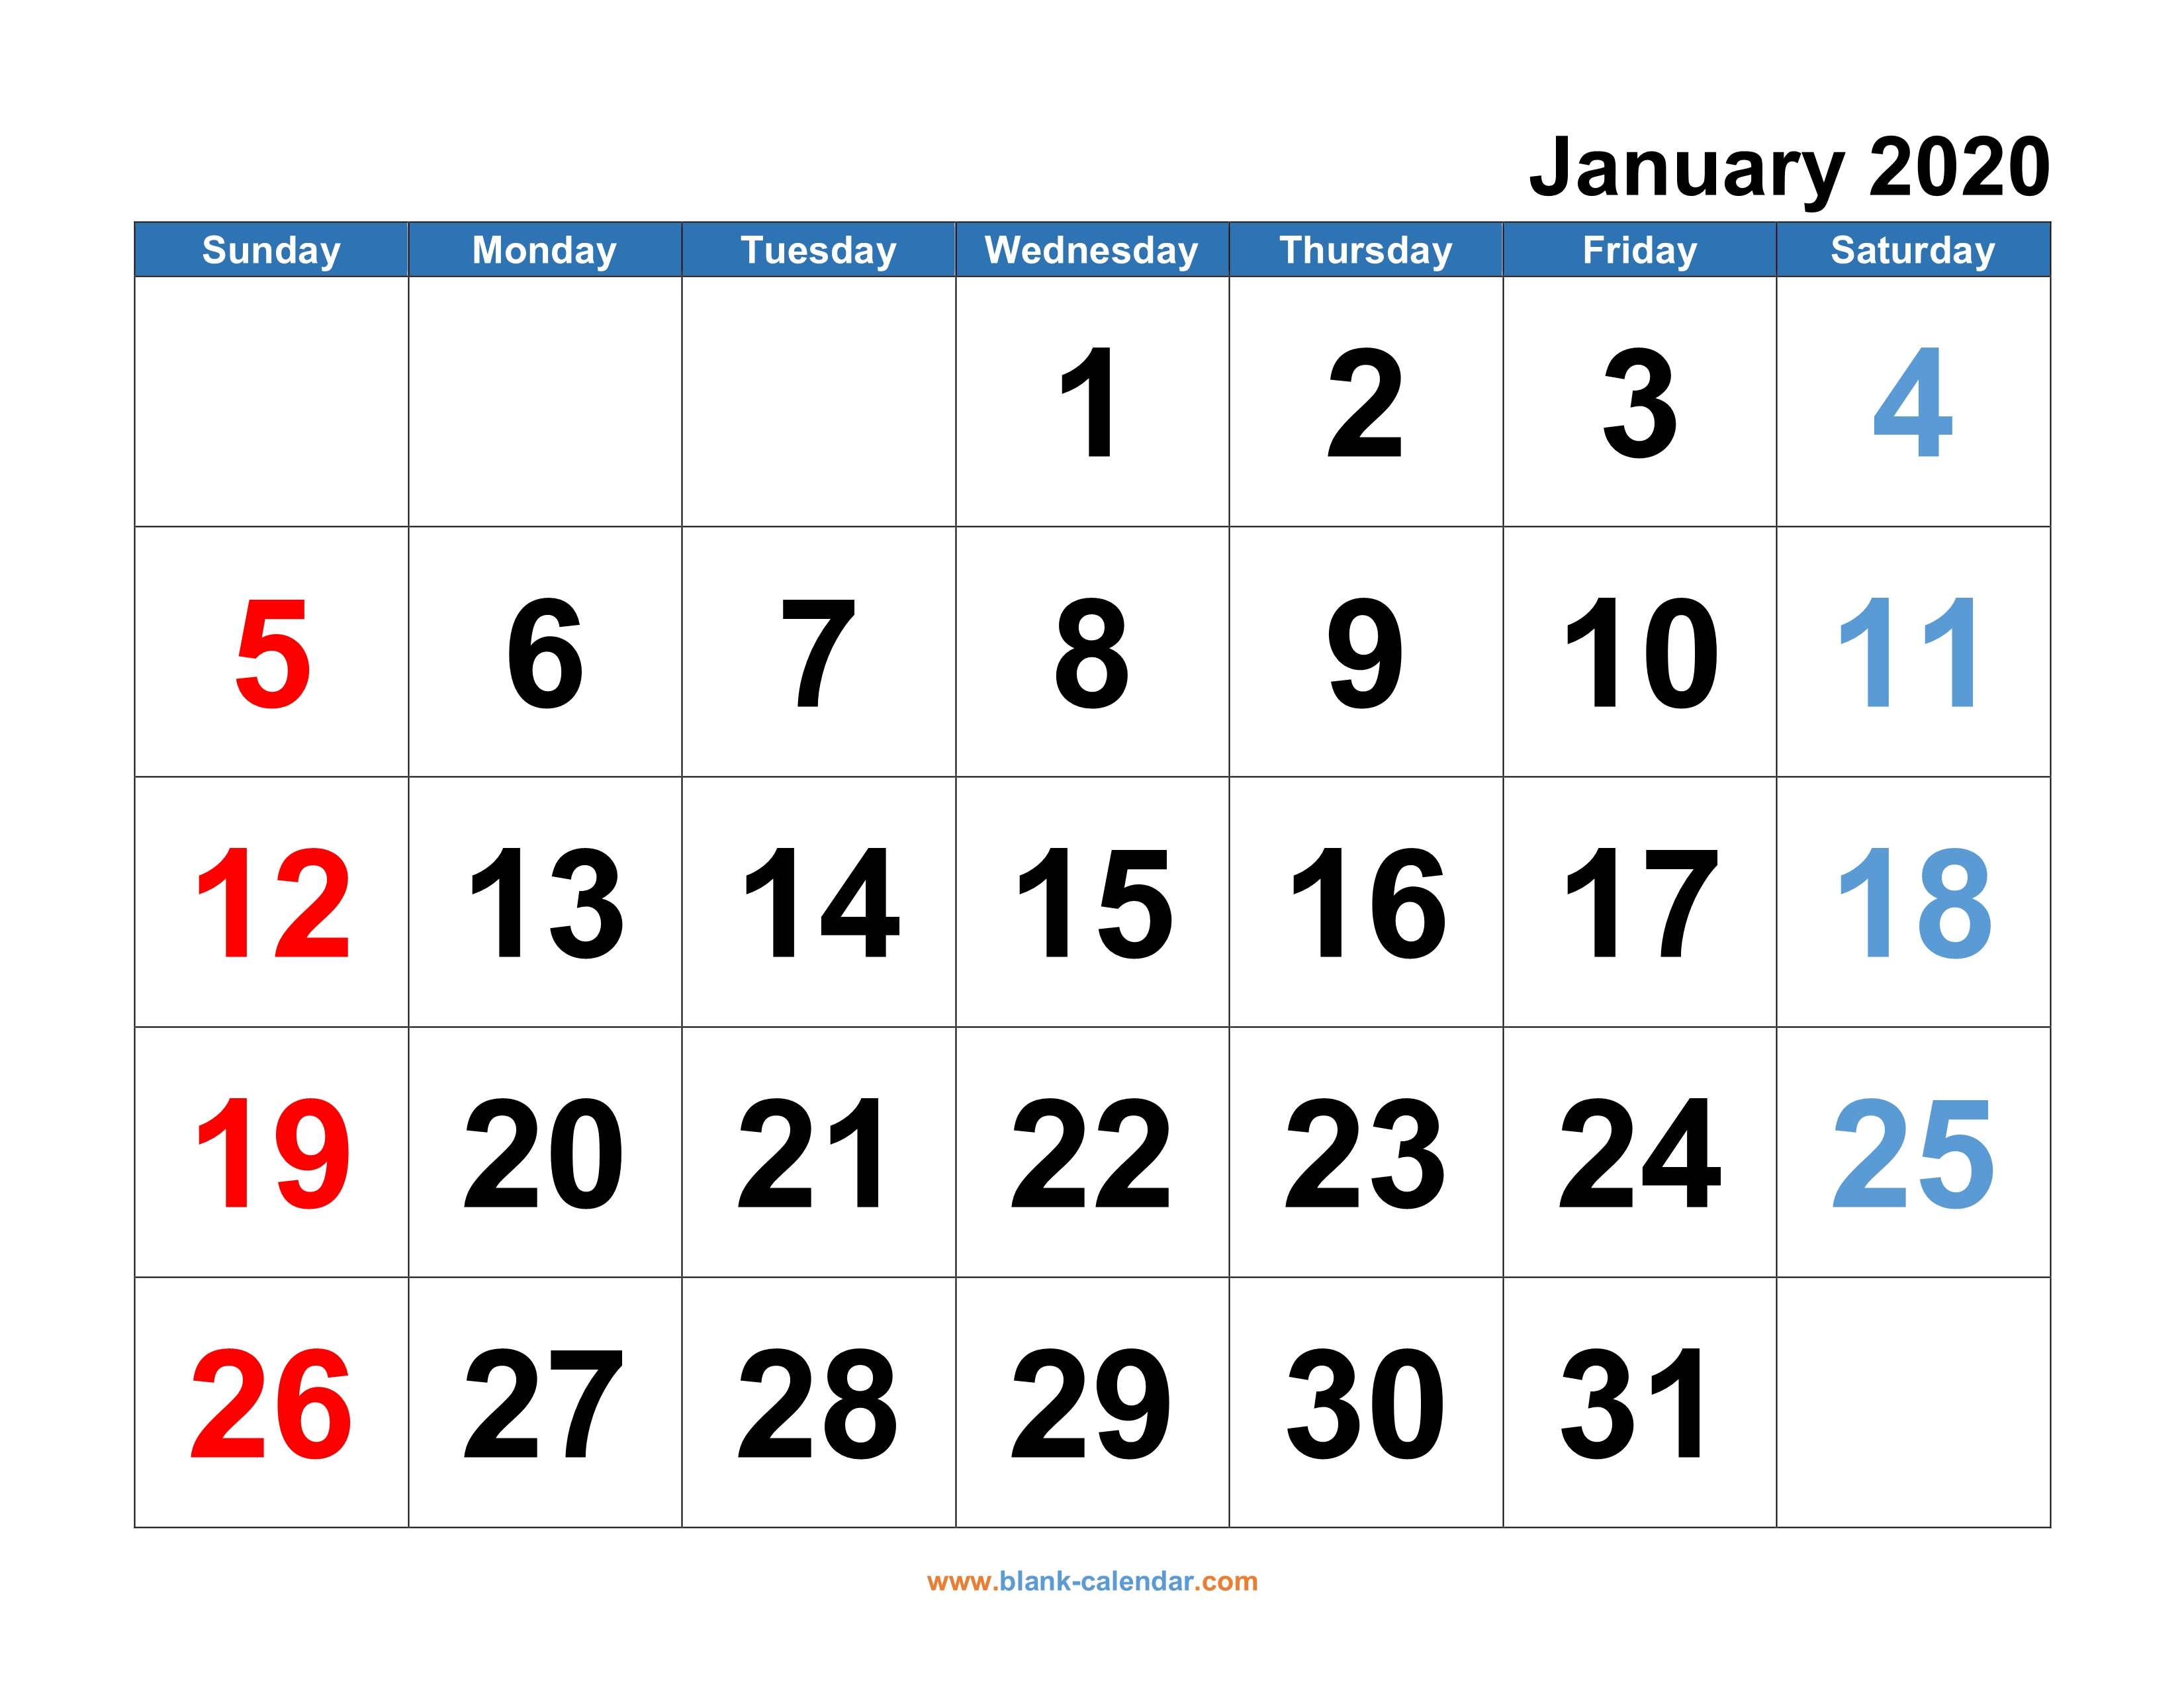 Monthly Calendar 2020 | Free Download, Editable And Printable regarding Free Template 2020 Sunday To Saturday Calendar